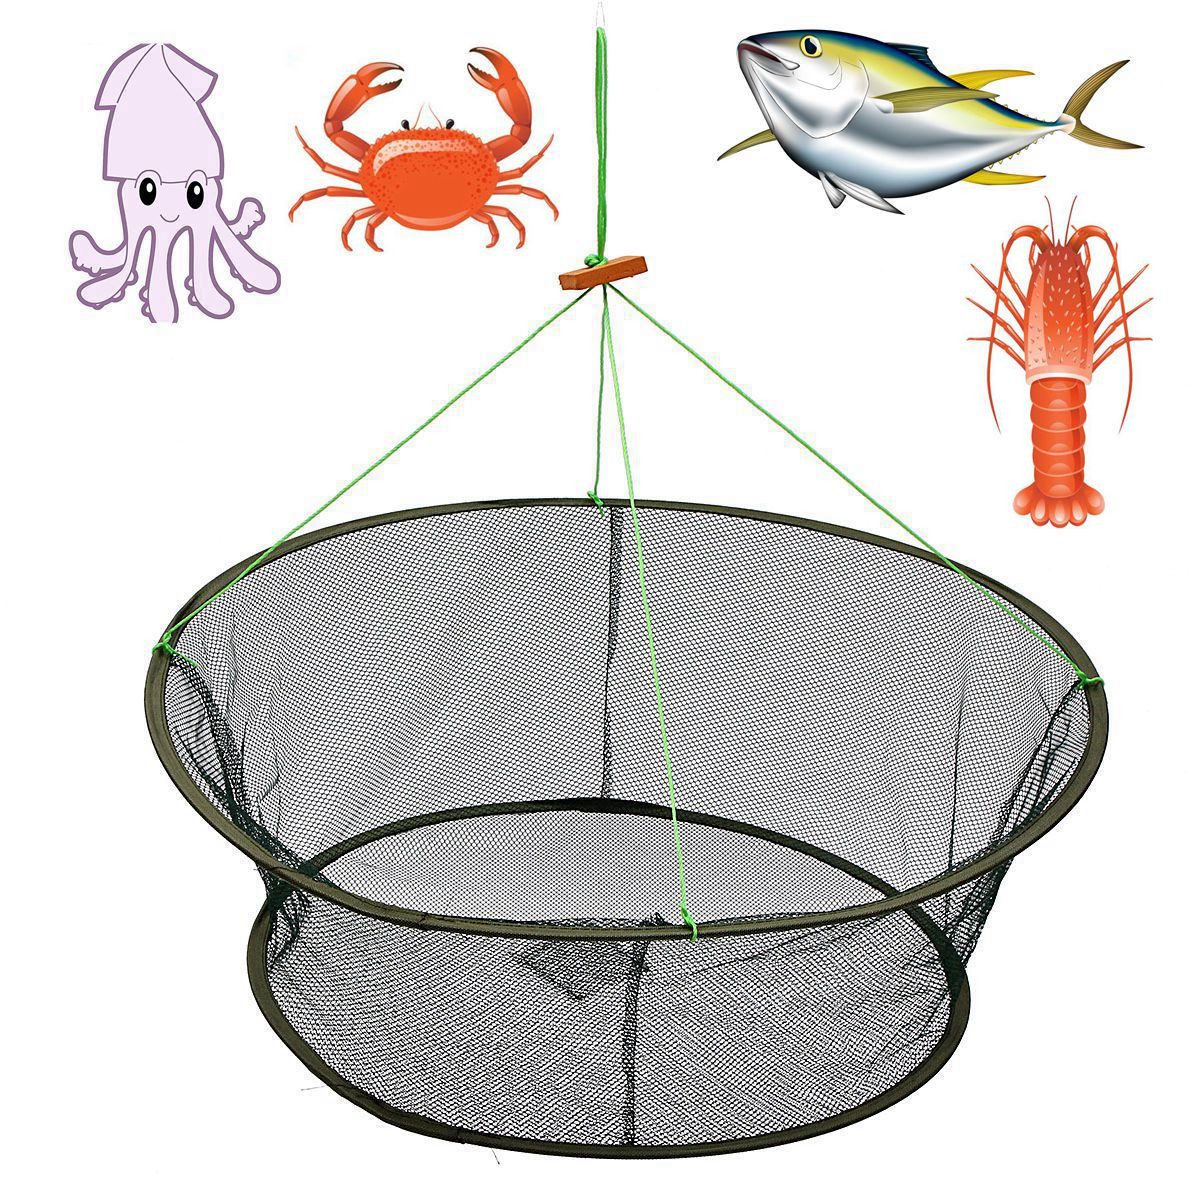 "1-Pack 61.5x85cm/24x33"" Large Foldable Fishing Net Bait Trap Cast Dip Net Cage Crab Fish Minnow Crawdad Shrimp"